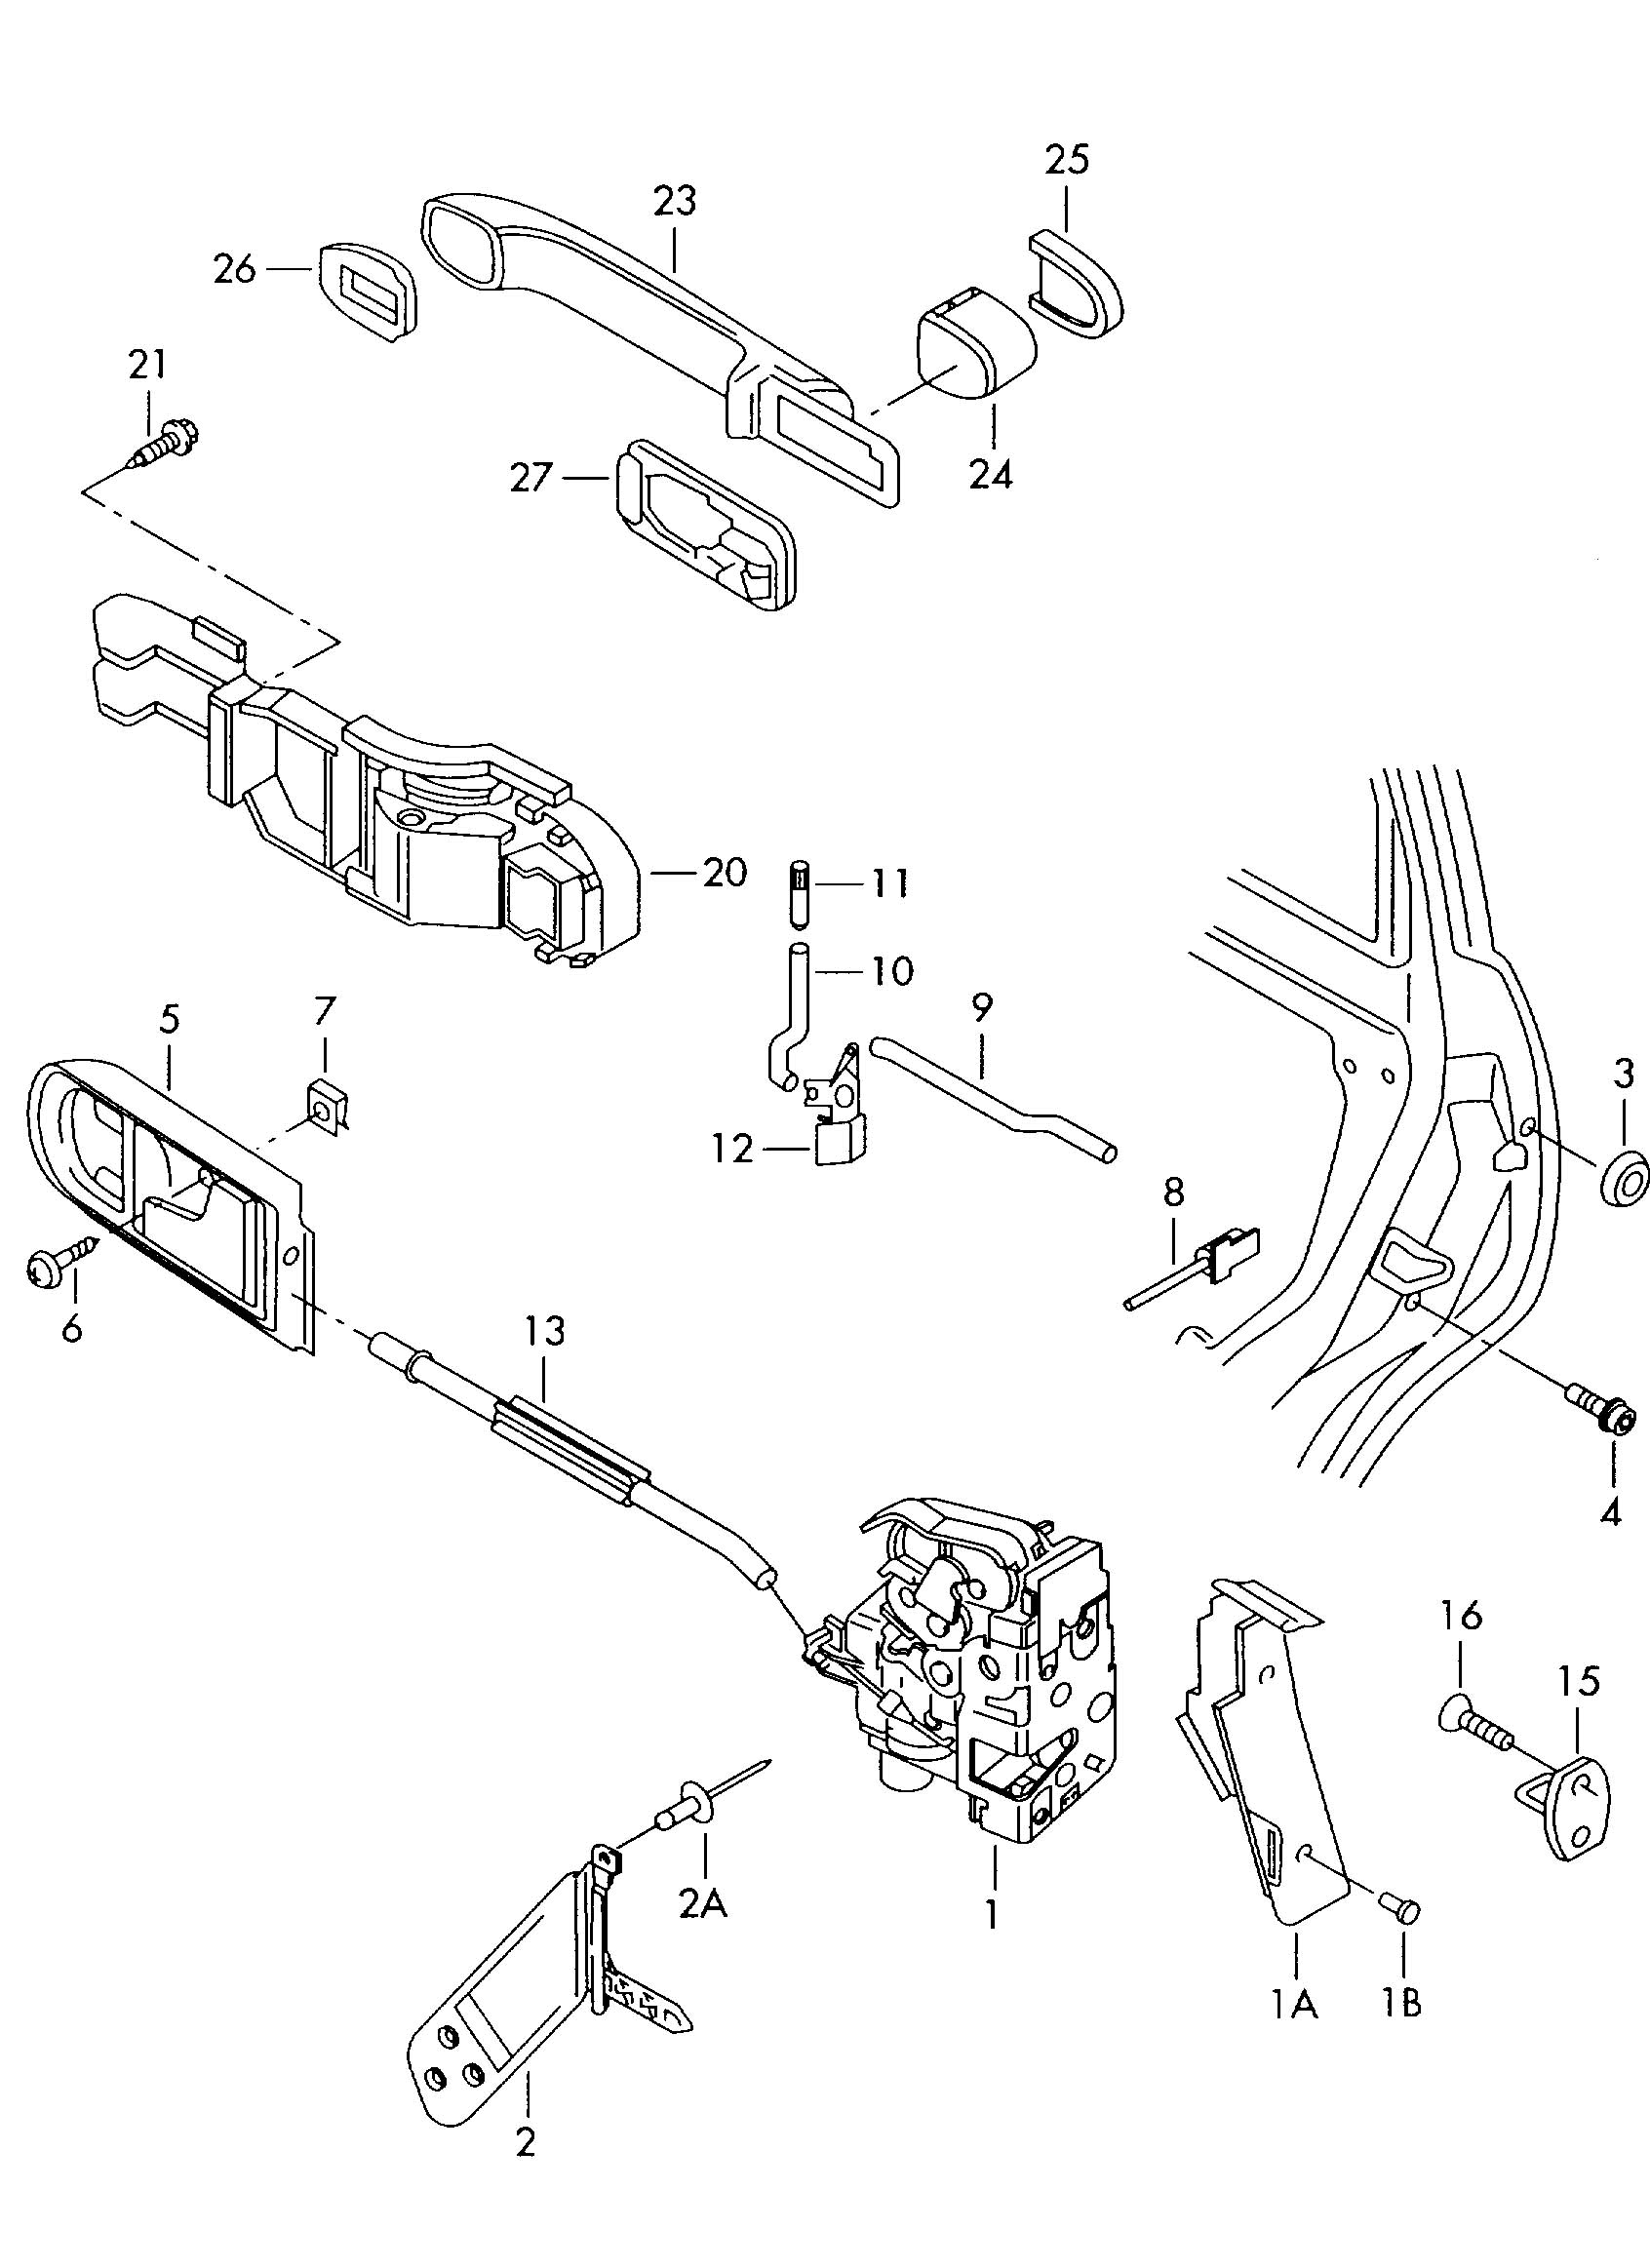 skoda wiring diagram with Vw Touareg Door Handle on Chrysler 2 5 4cyl Engine Diagram moreover 1 8 20v Turbo Engine Diagram besides Is My Car Obd 2  patible And Supported By Obd Software moreover Ford Focus Coolant Temperature Sensor additionally Renault Megane 2 Wiring Diagram Pdf.